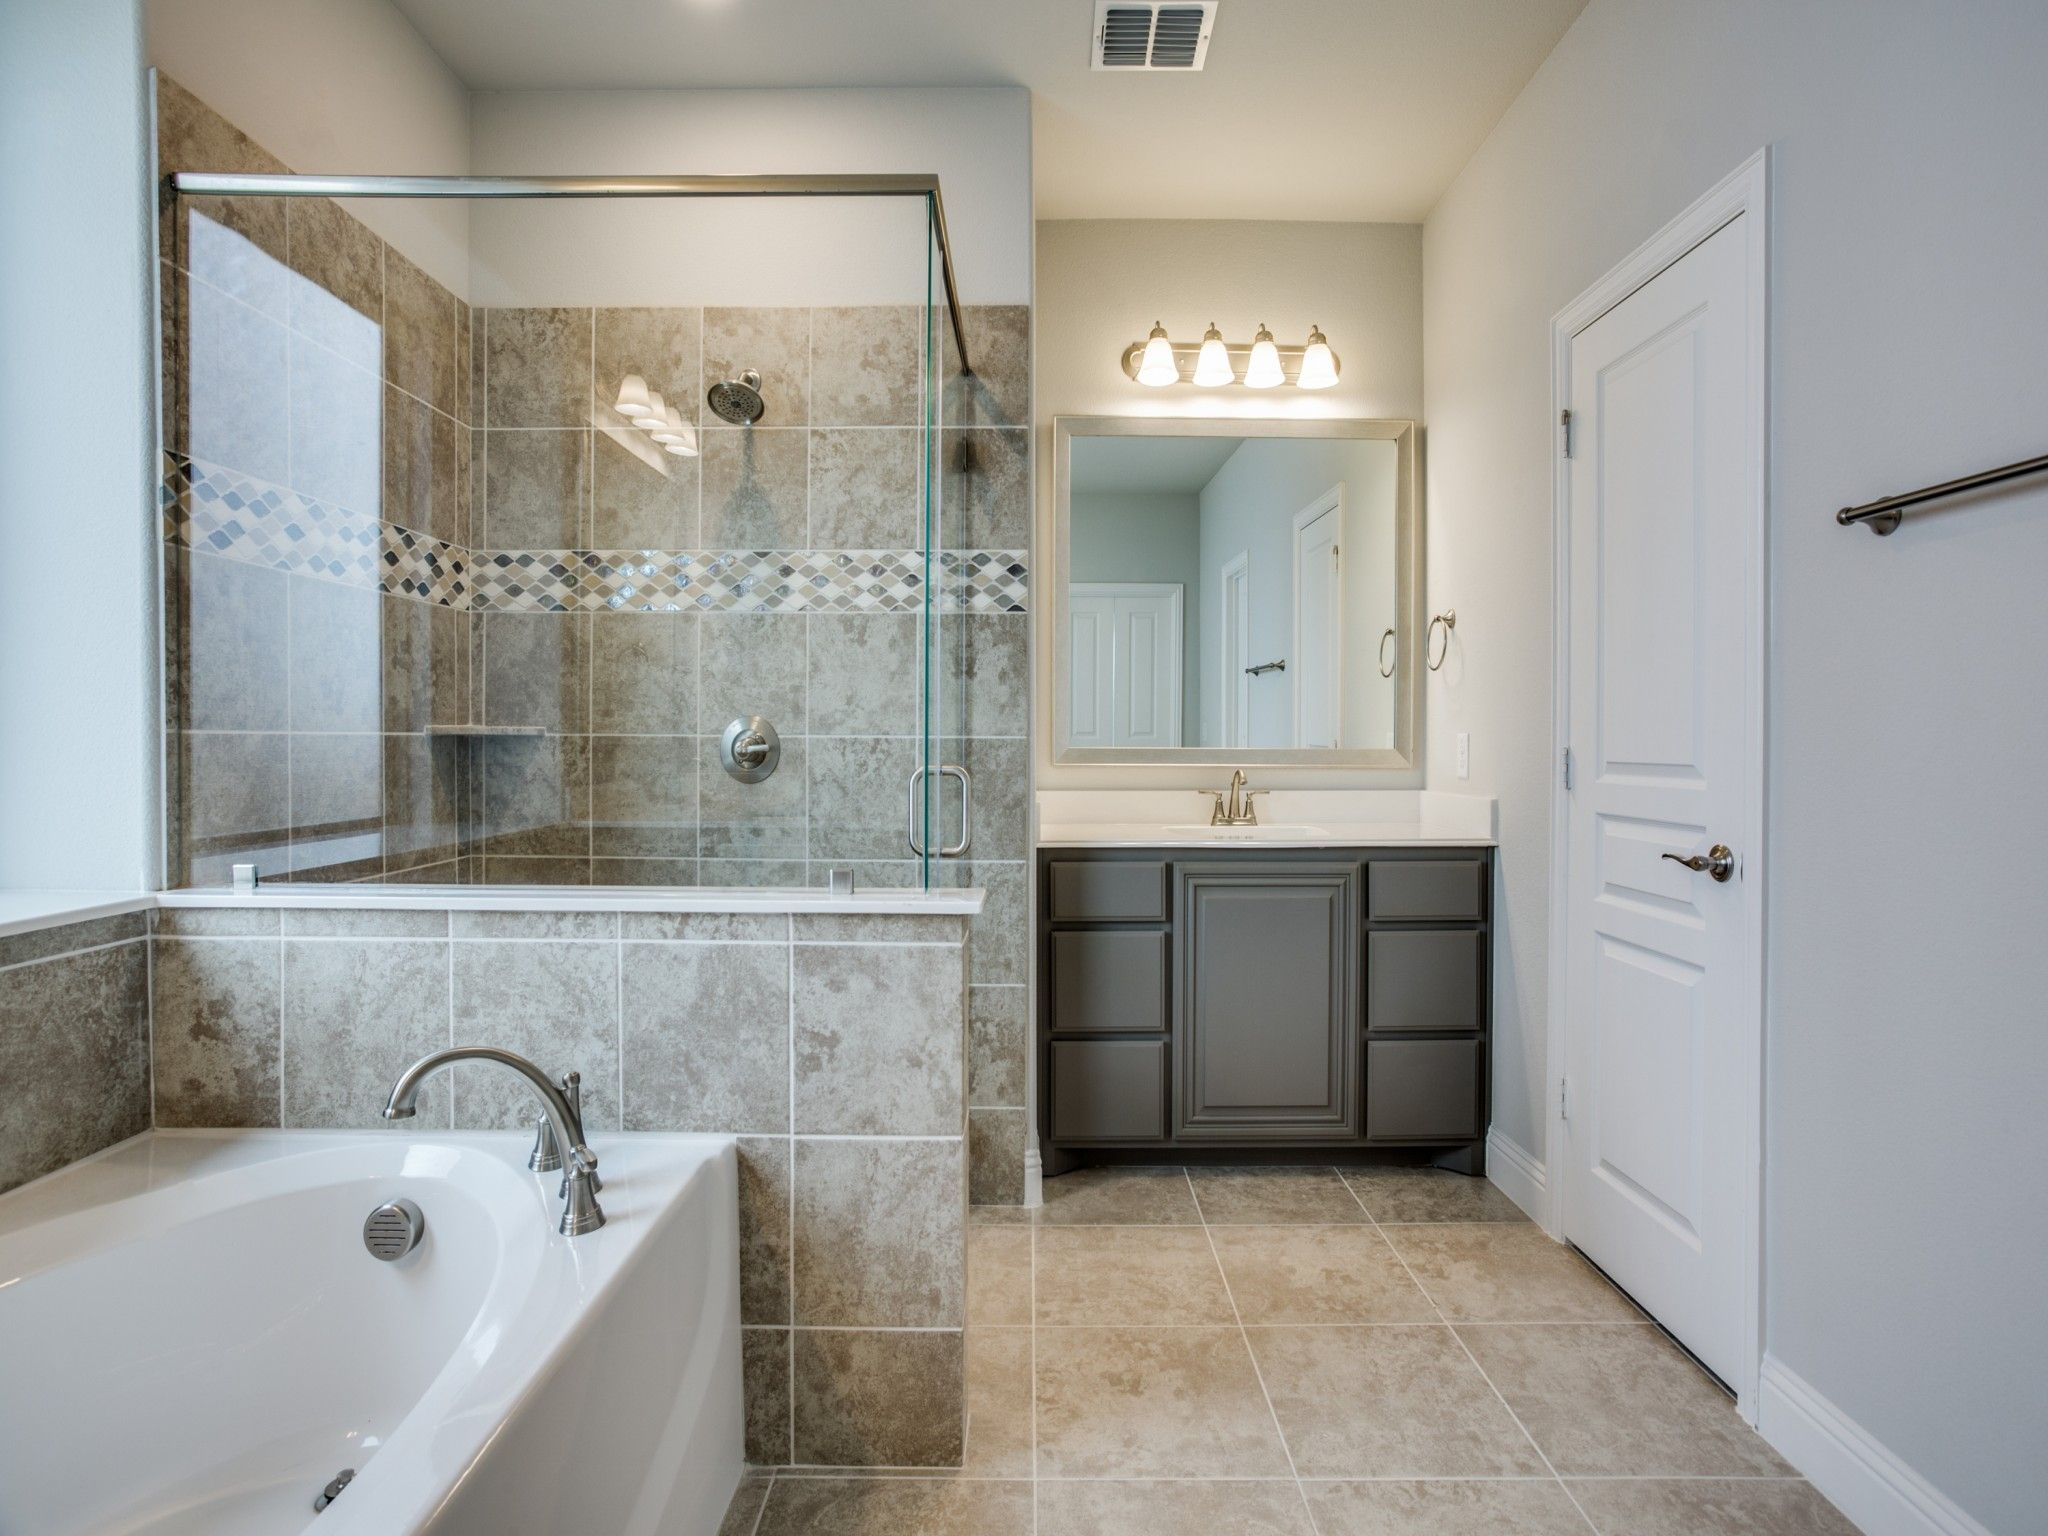 Bath And Shower Lovers Unite Bloomfield Homes New Homes New Homes For Sale